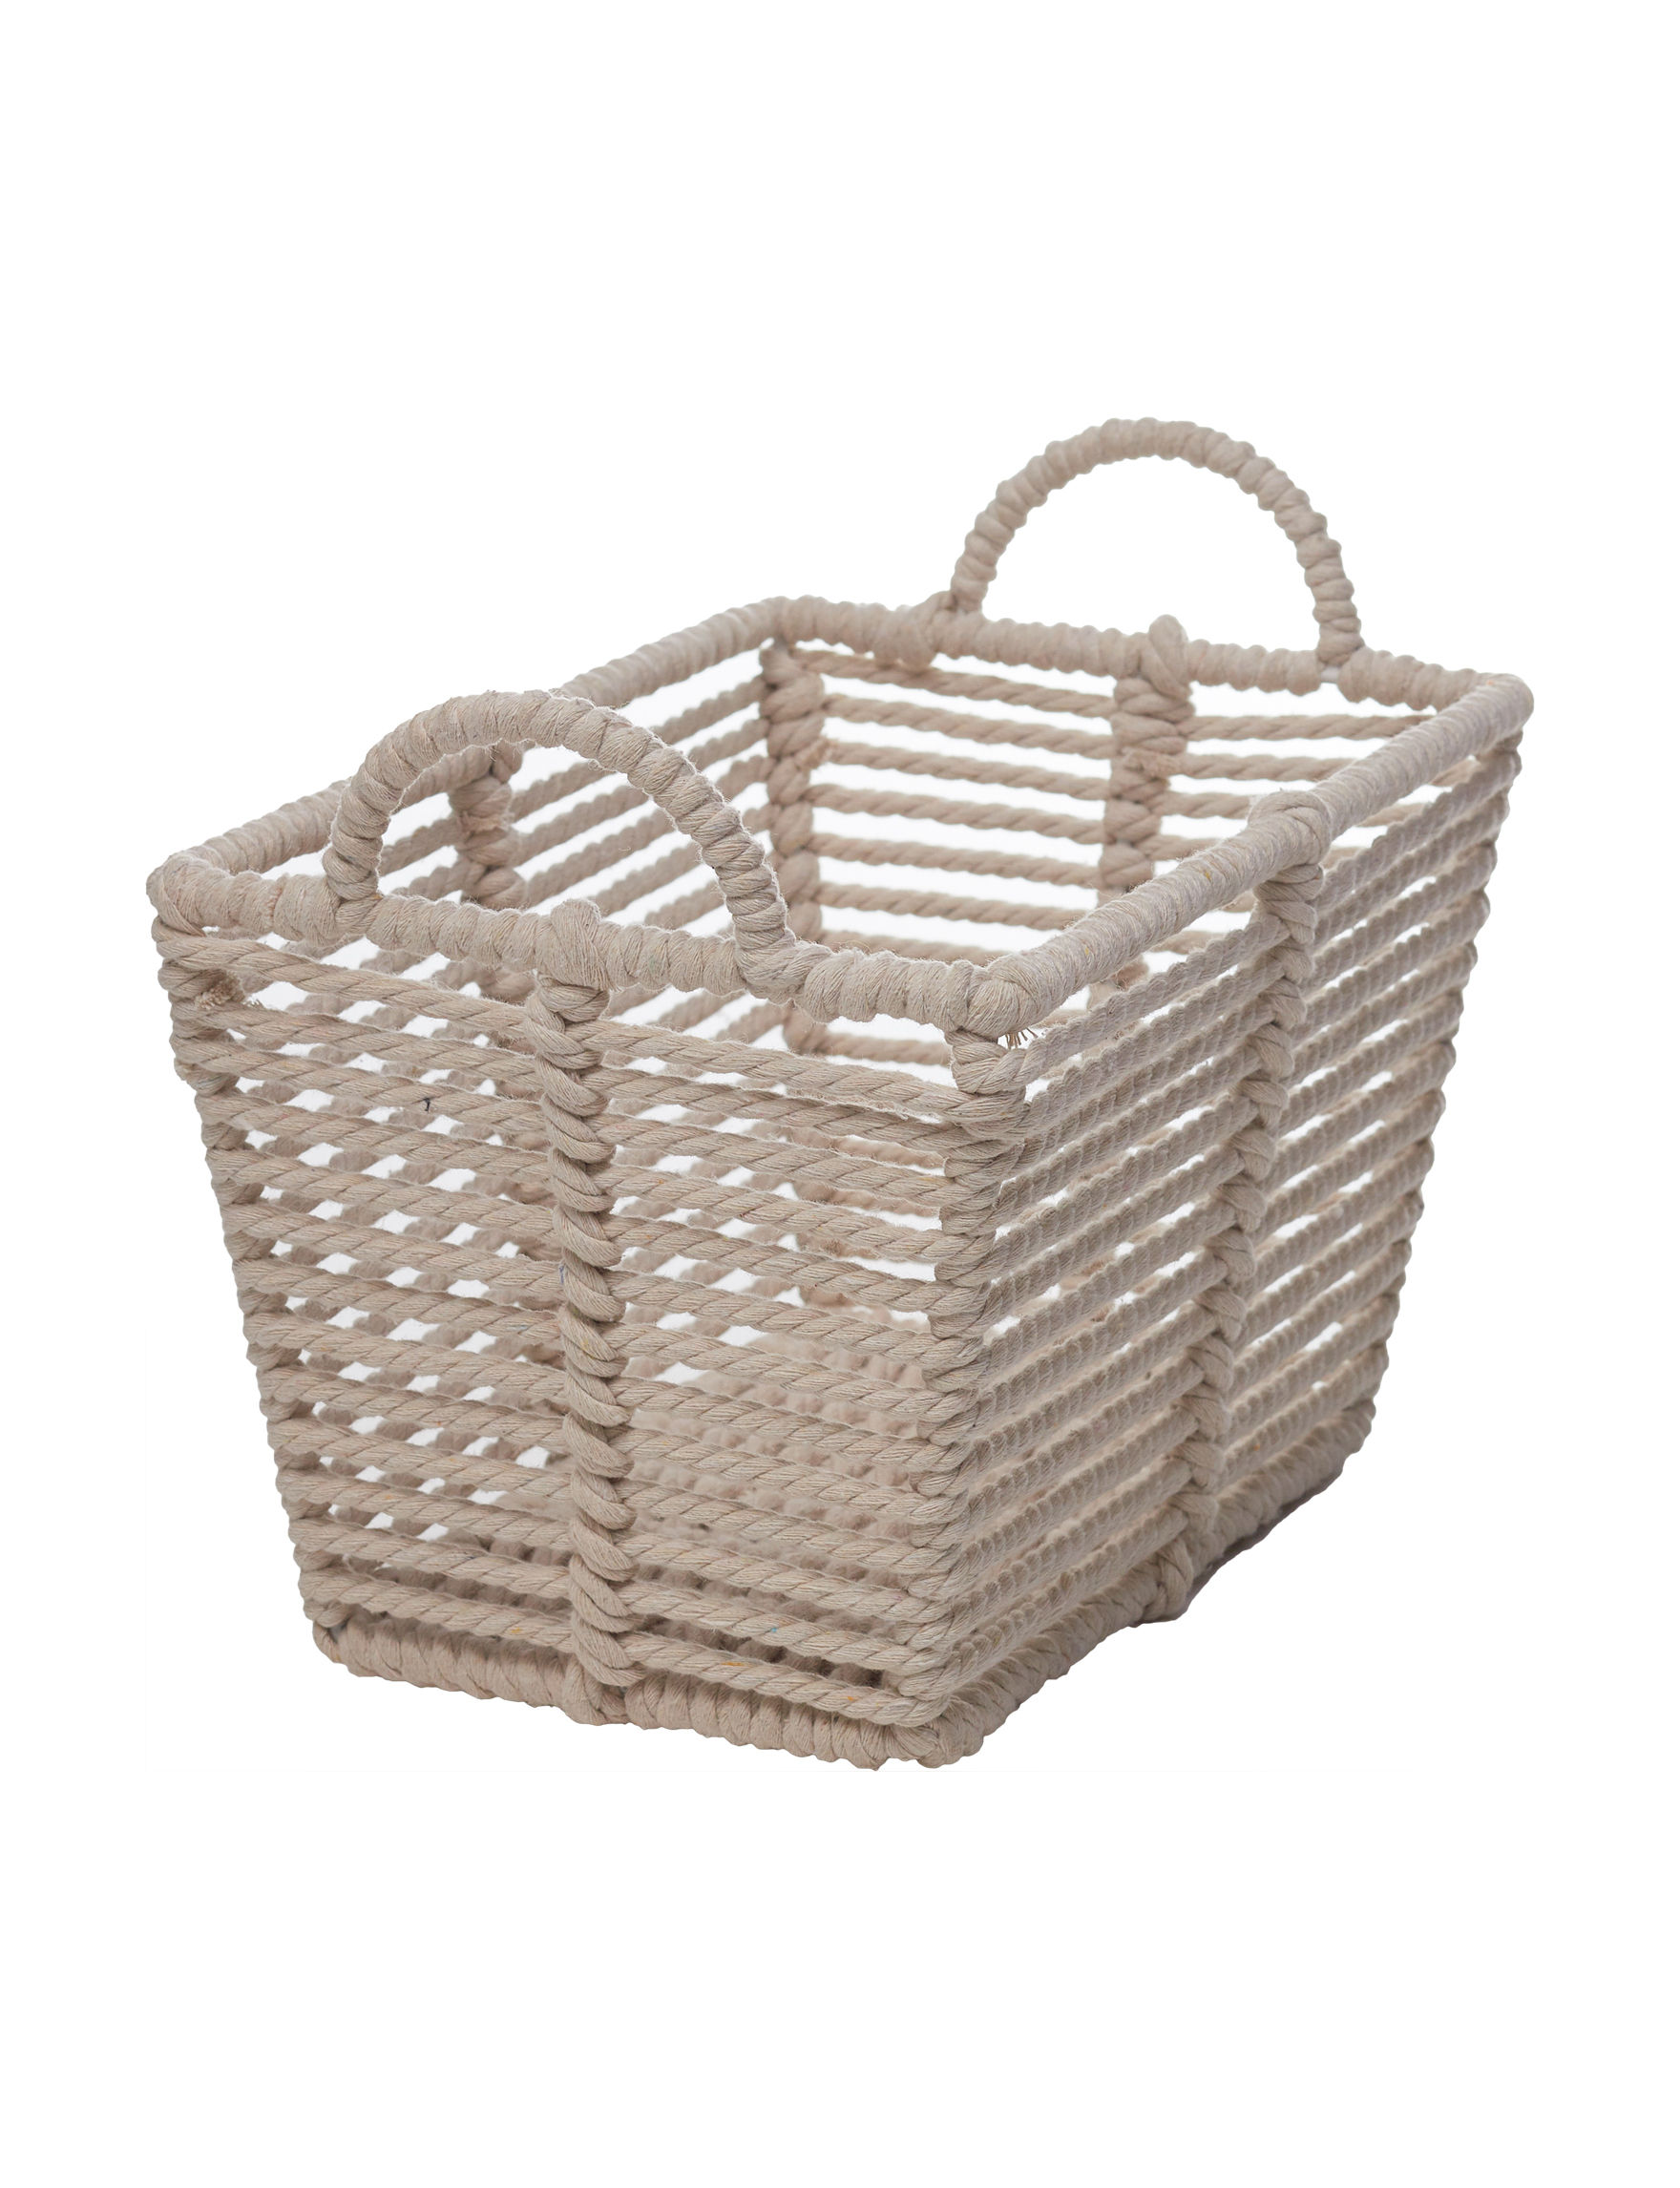 Enchante White Baskets Home Accents Storage & Organization